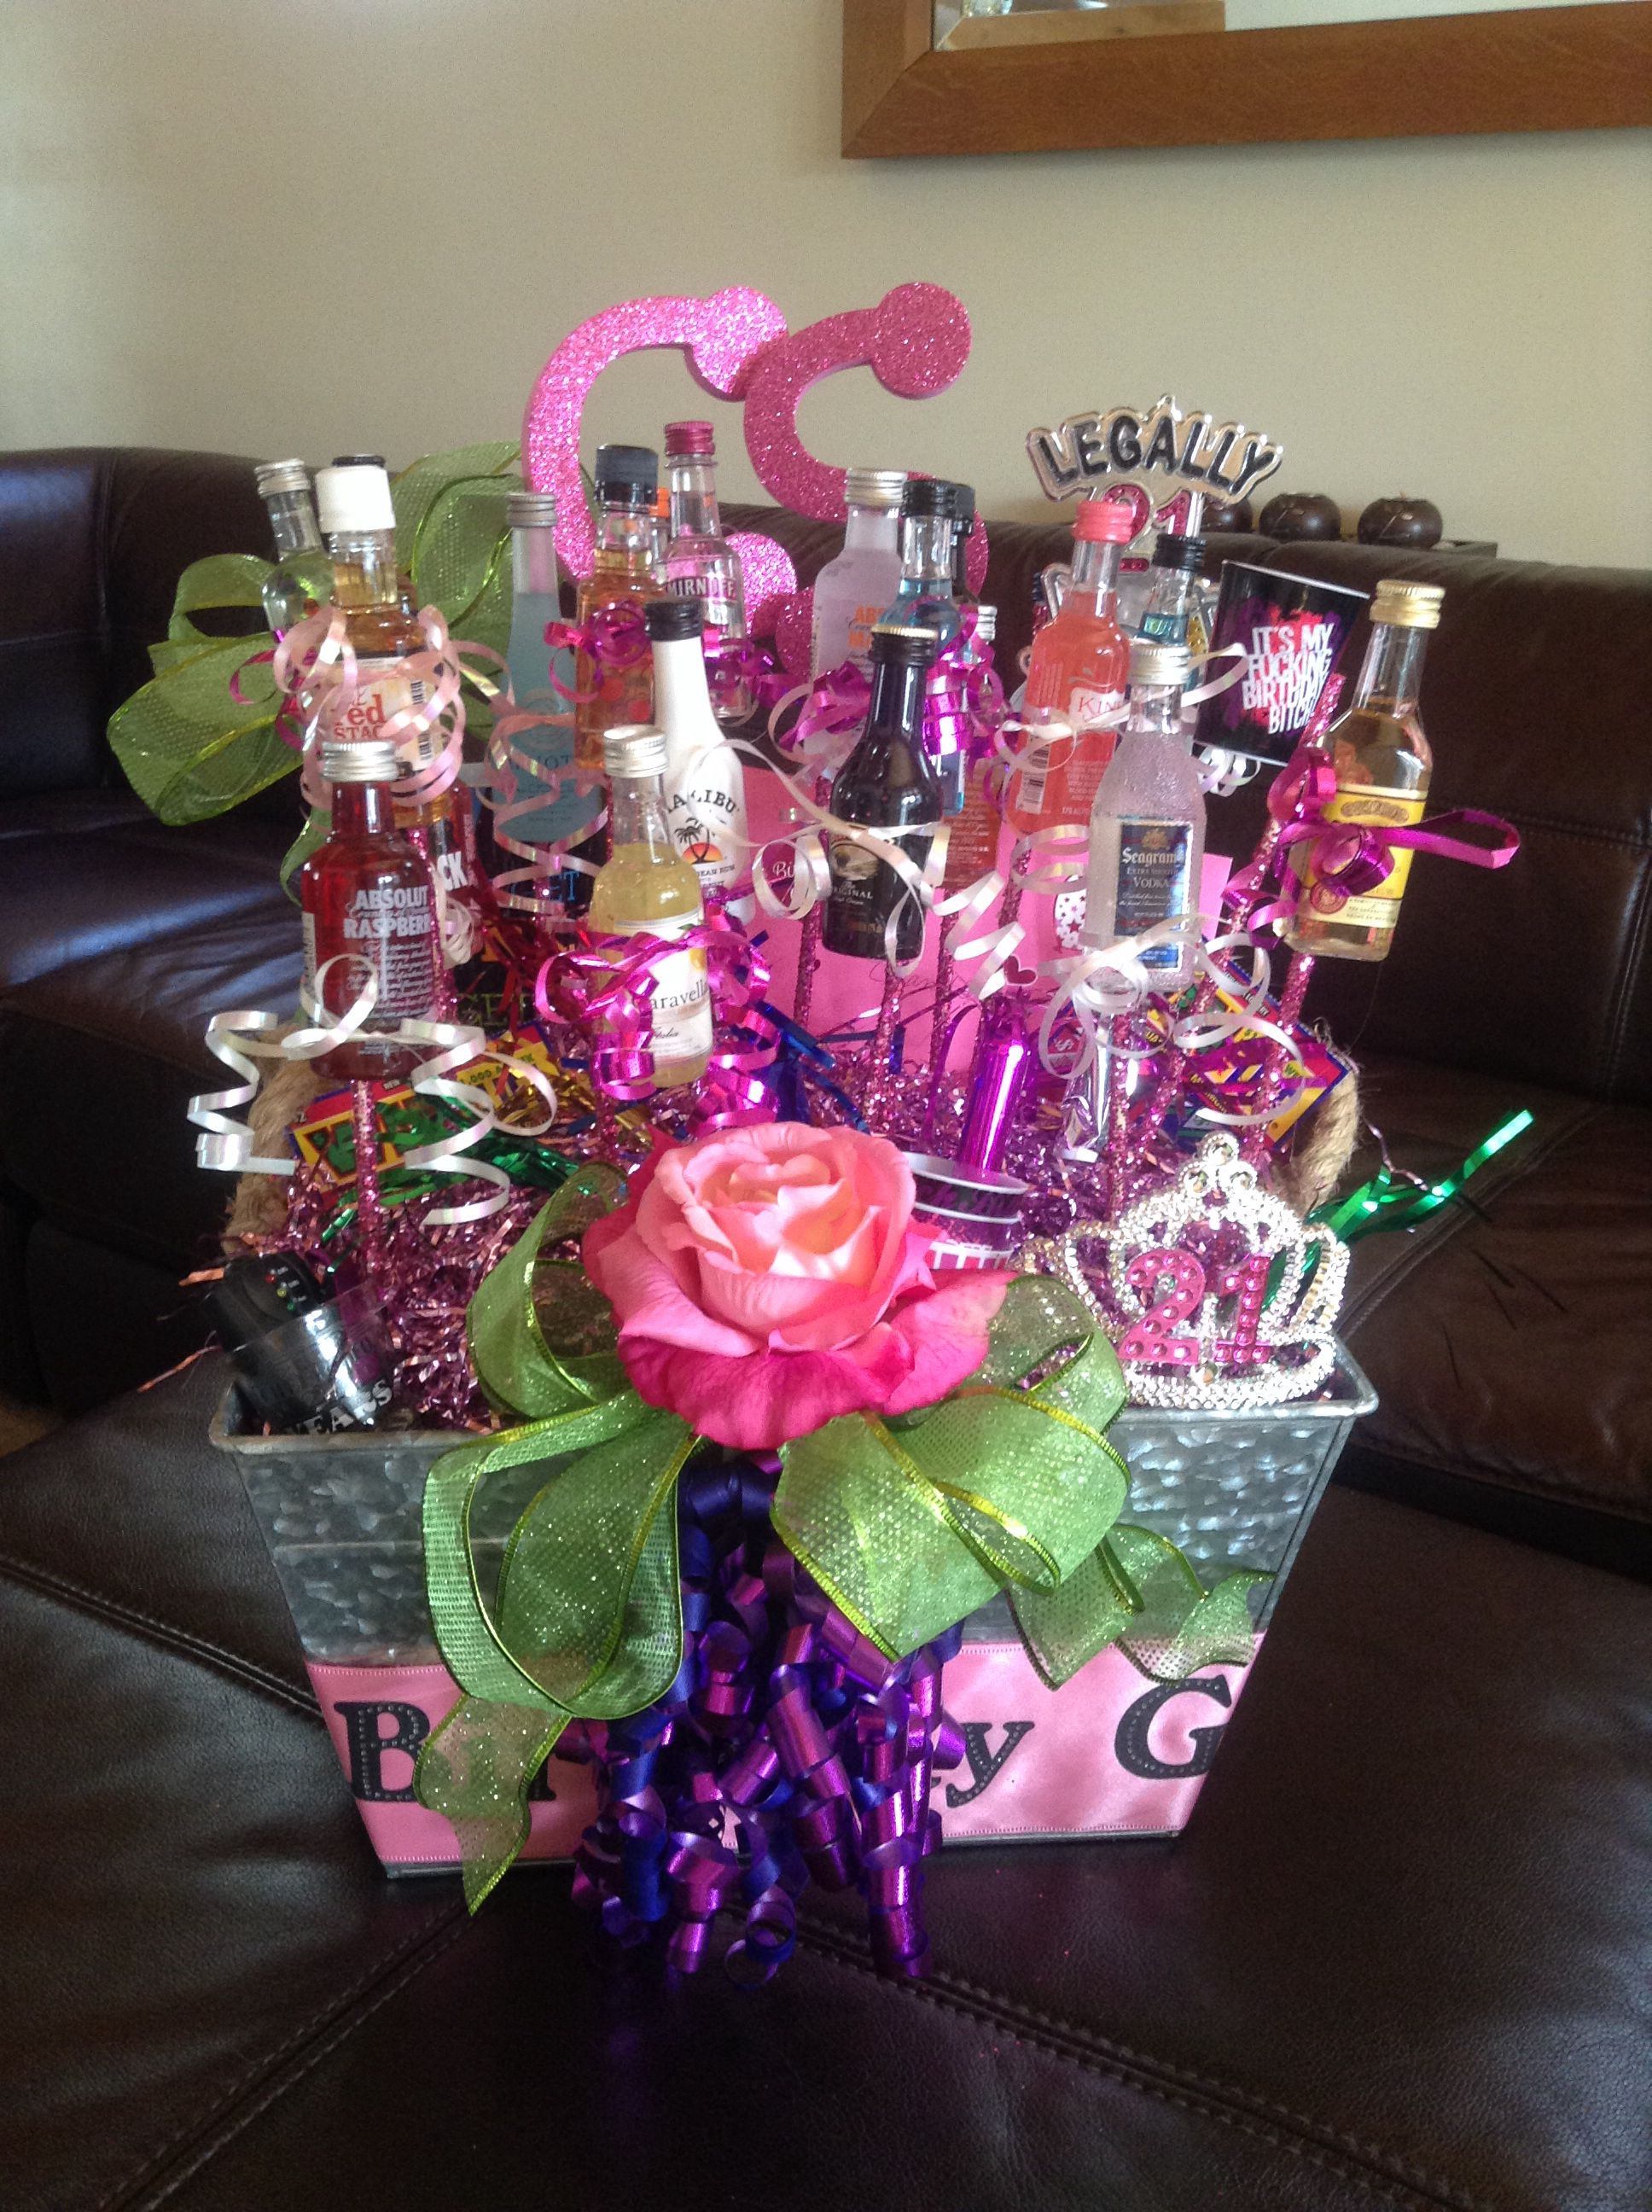 Happy 21st Birthday Gift Basket for my daughter! (With